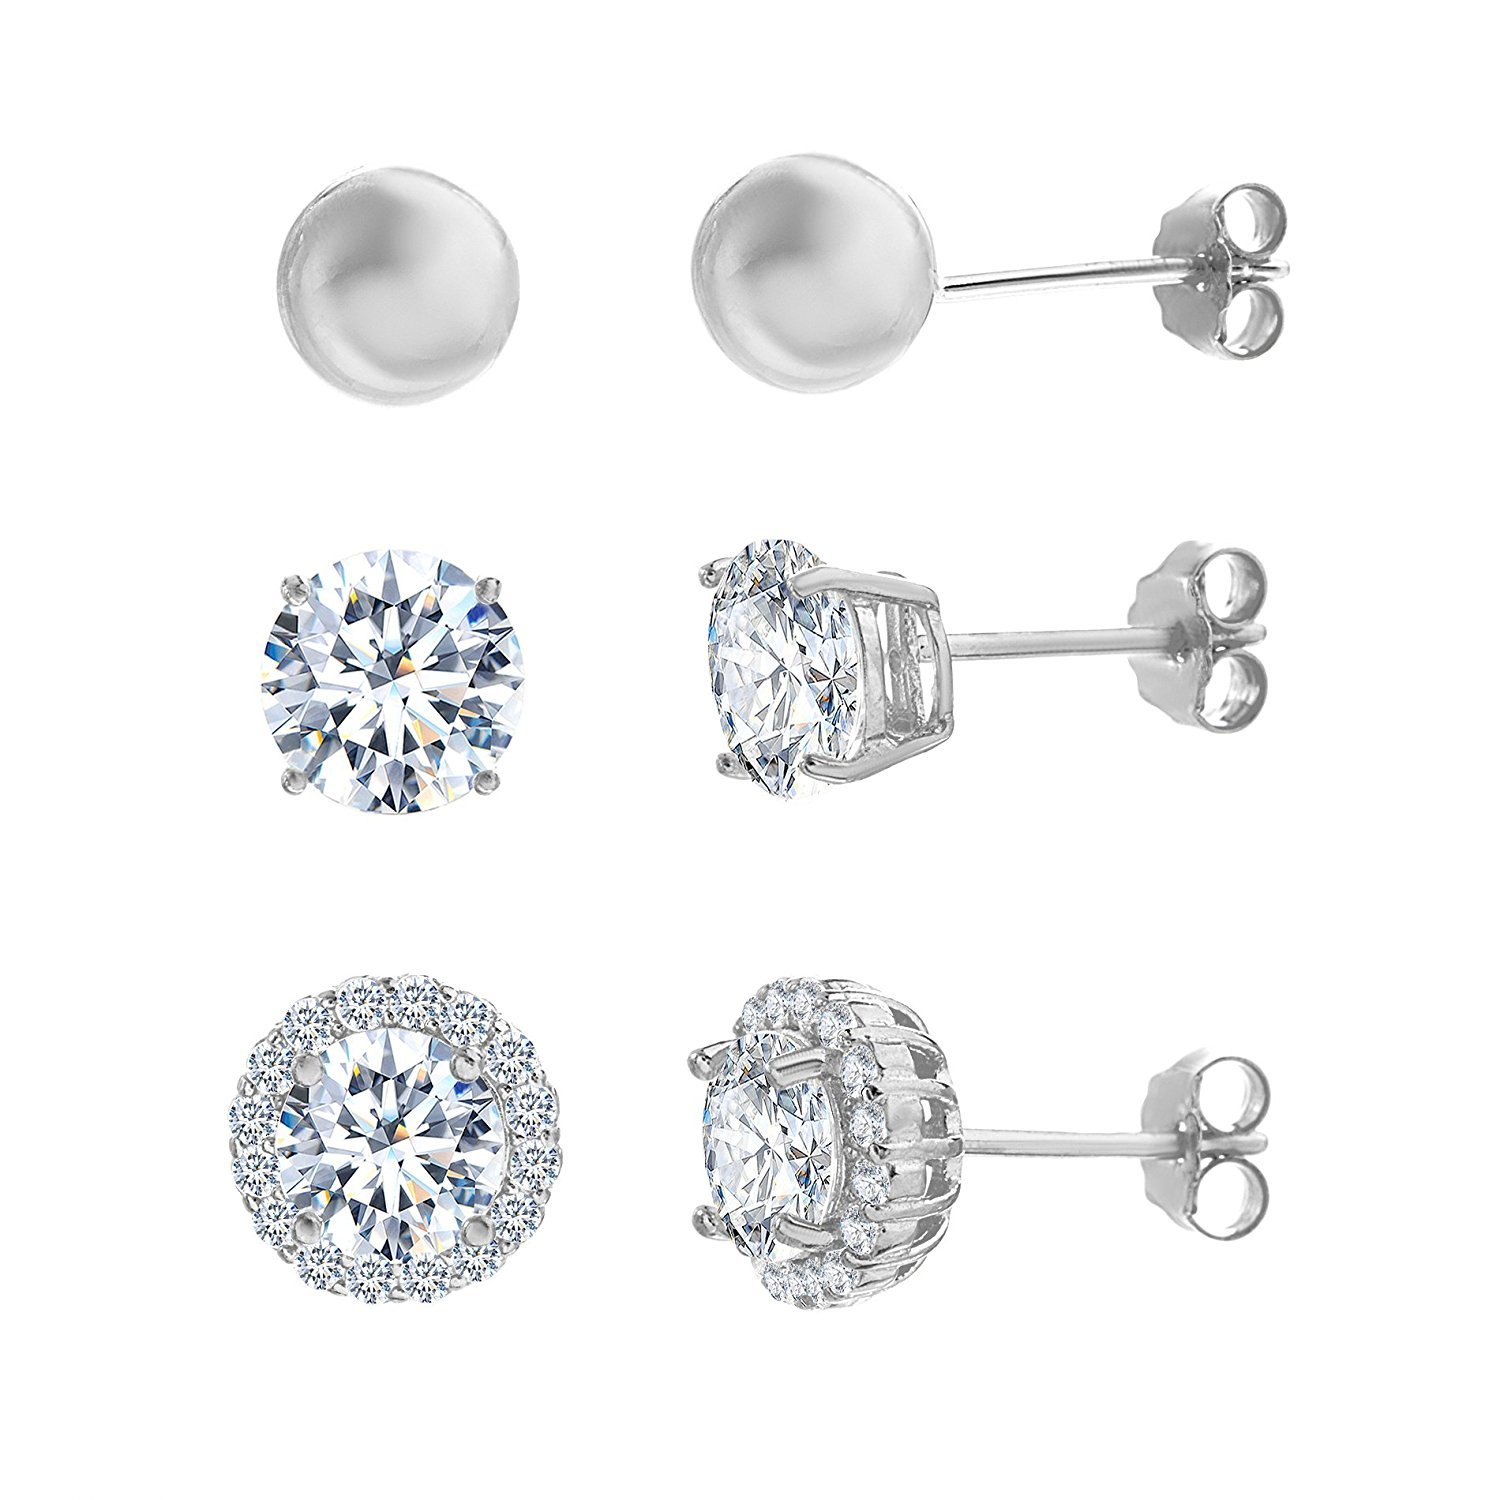 Lesa Michele Cubic Zirconia 3 pair Stud Earring Set in Sterling Silver by Lesa Michelle (Image #1)